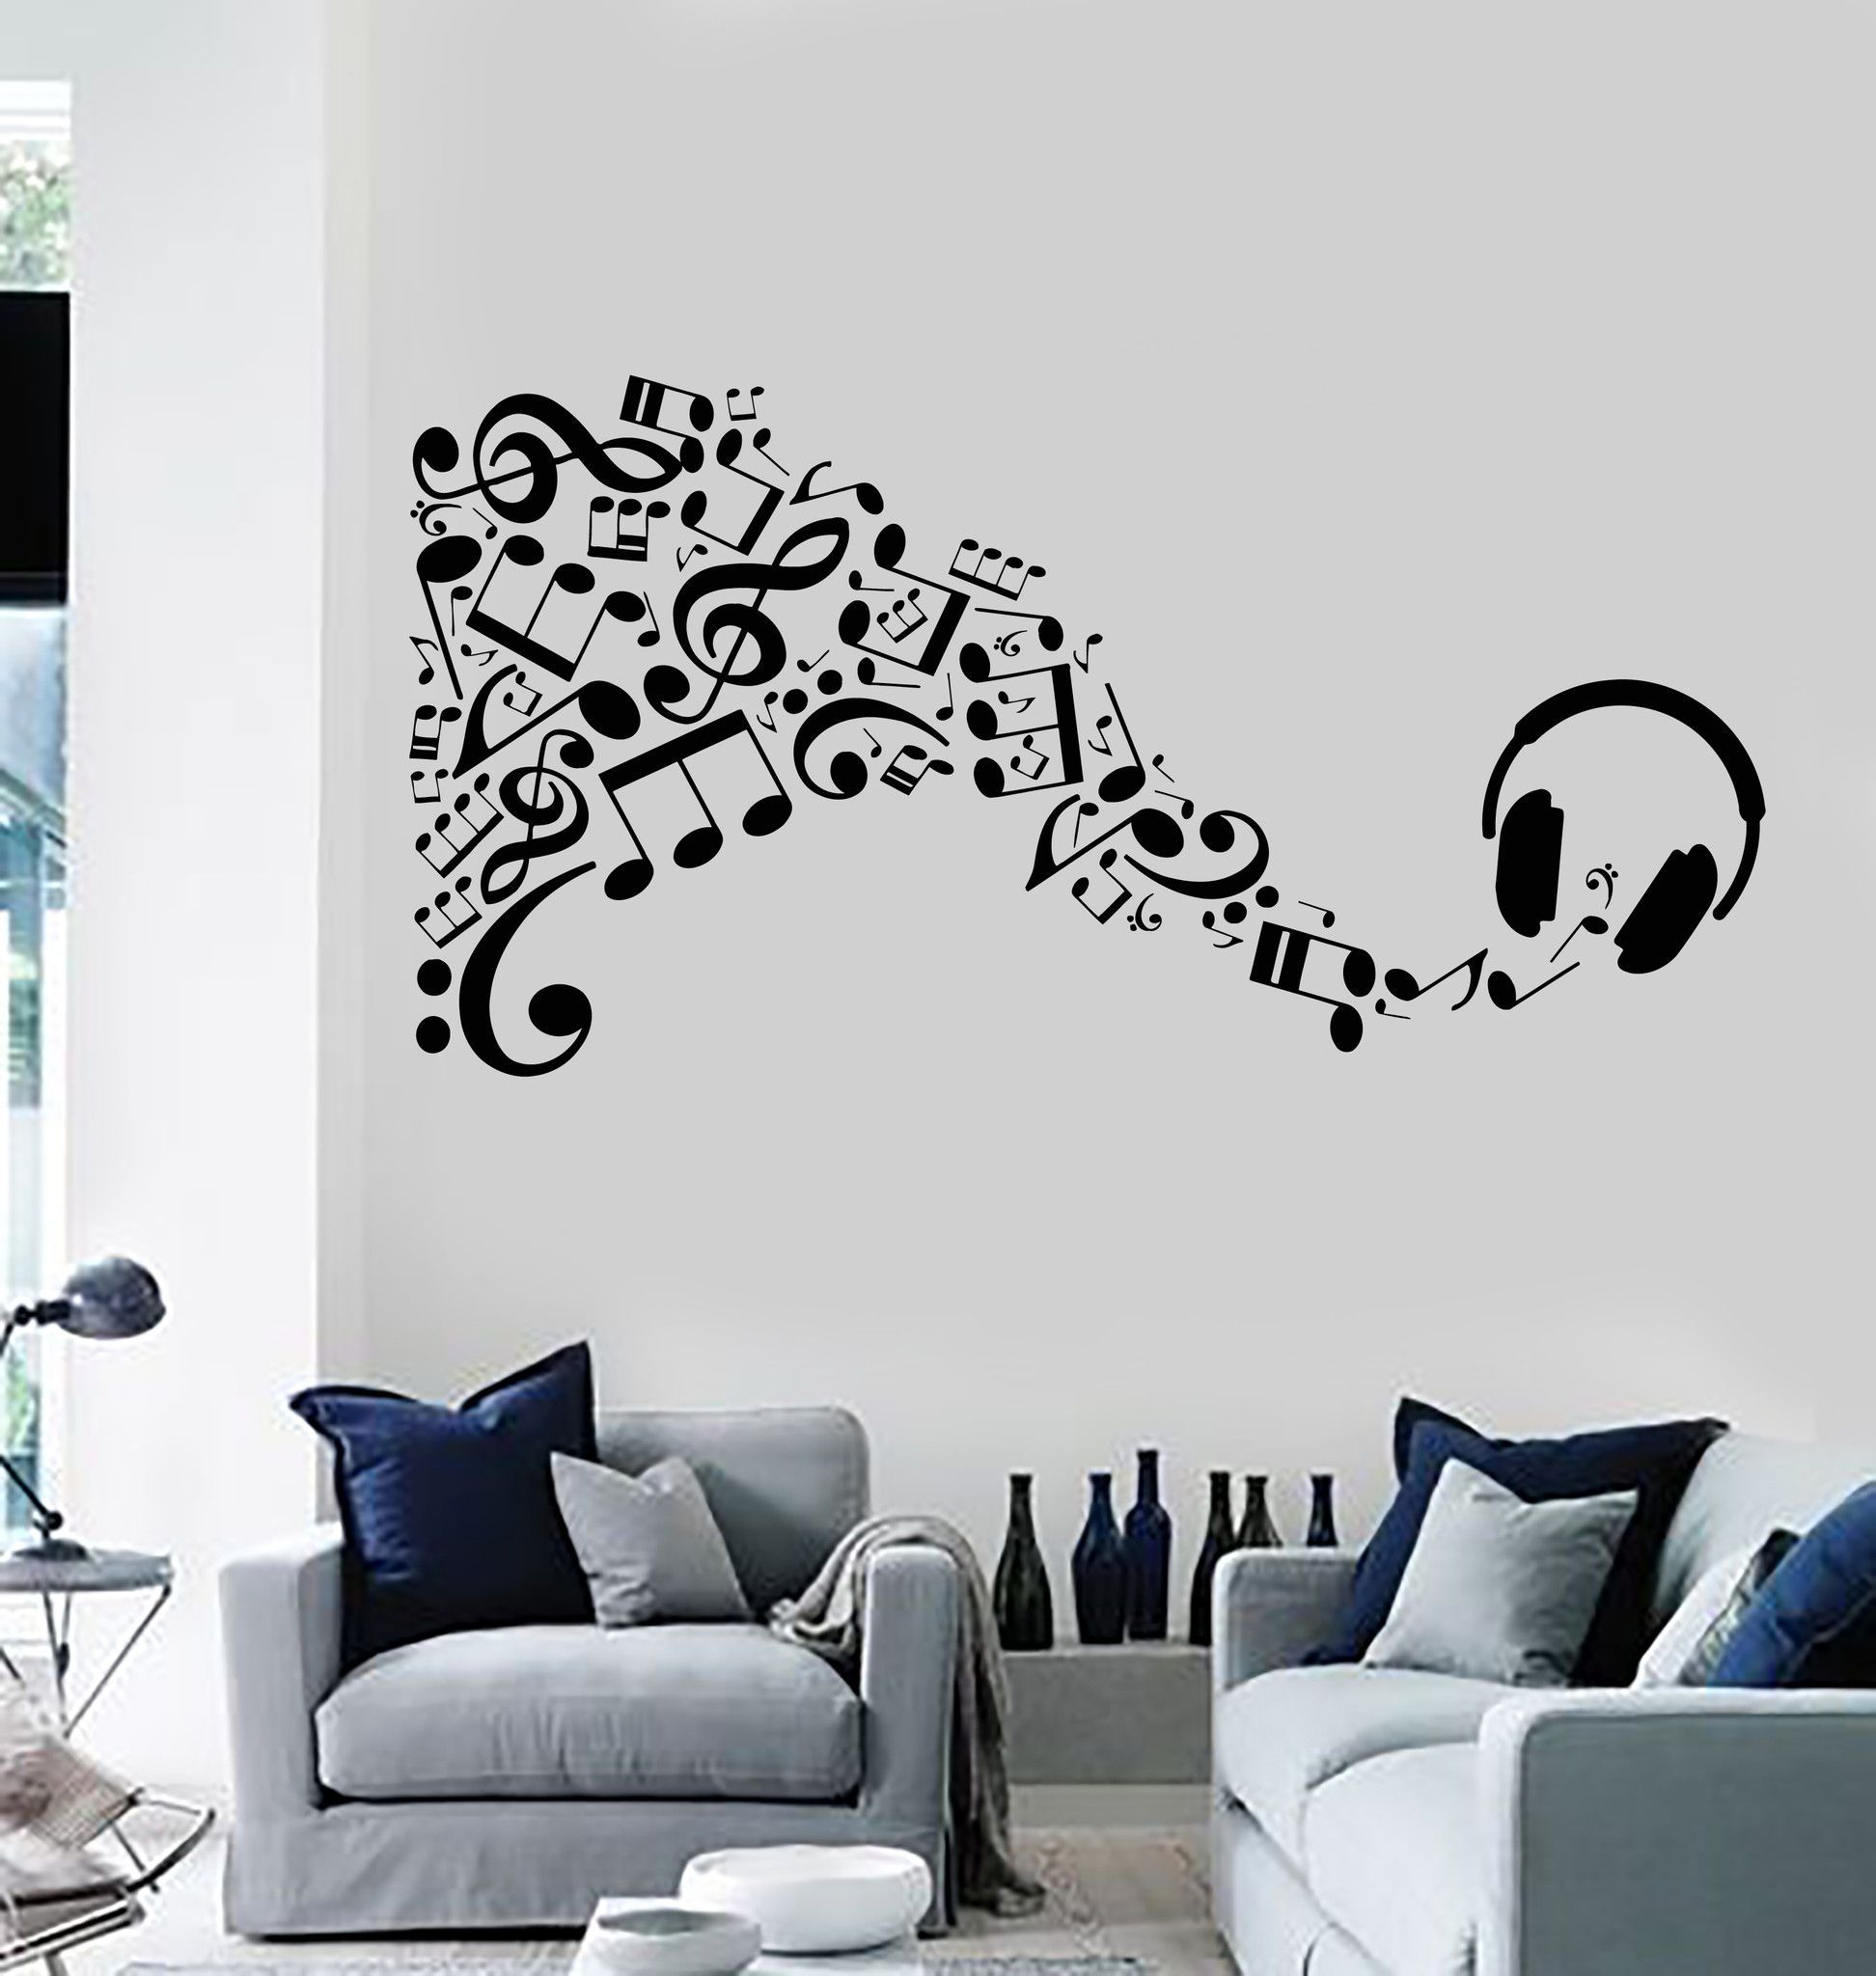 Good Vinyl Wall Decal Headphones Musical Notes Music Art Stickers (ig4134)